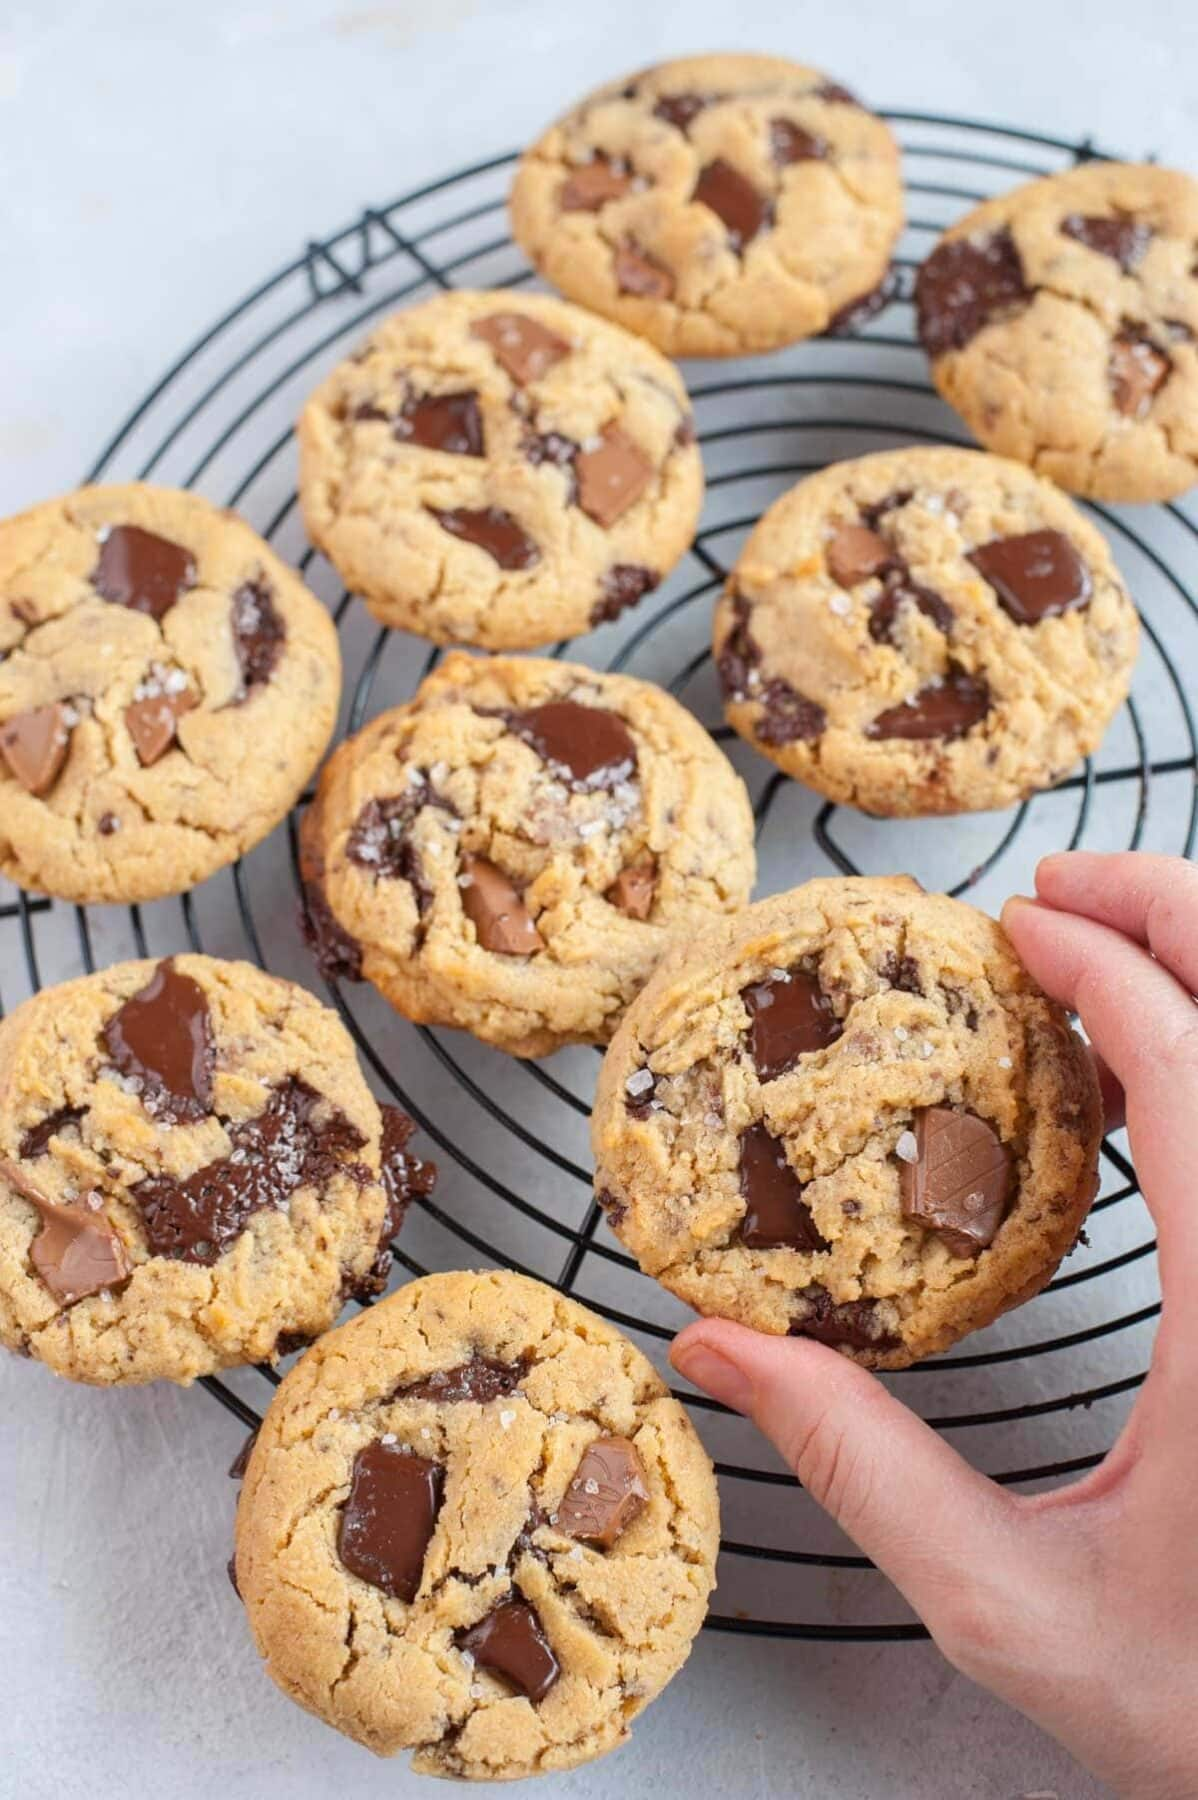 Chocolate chunk peanut butter cookie held in a hand.